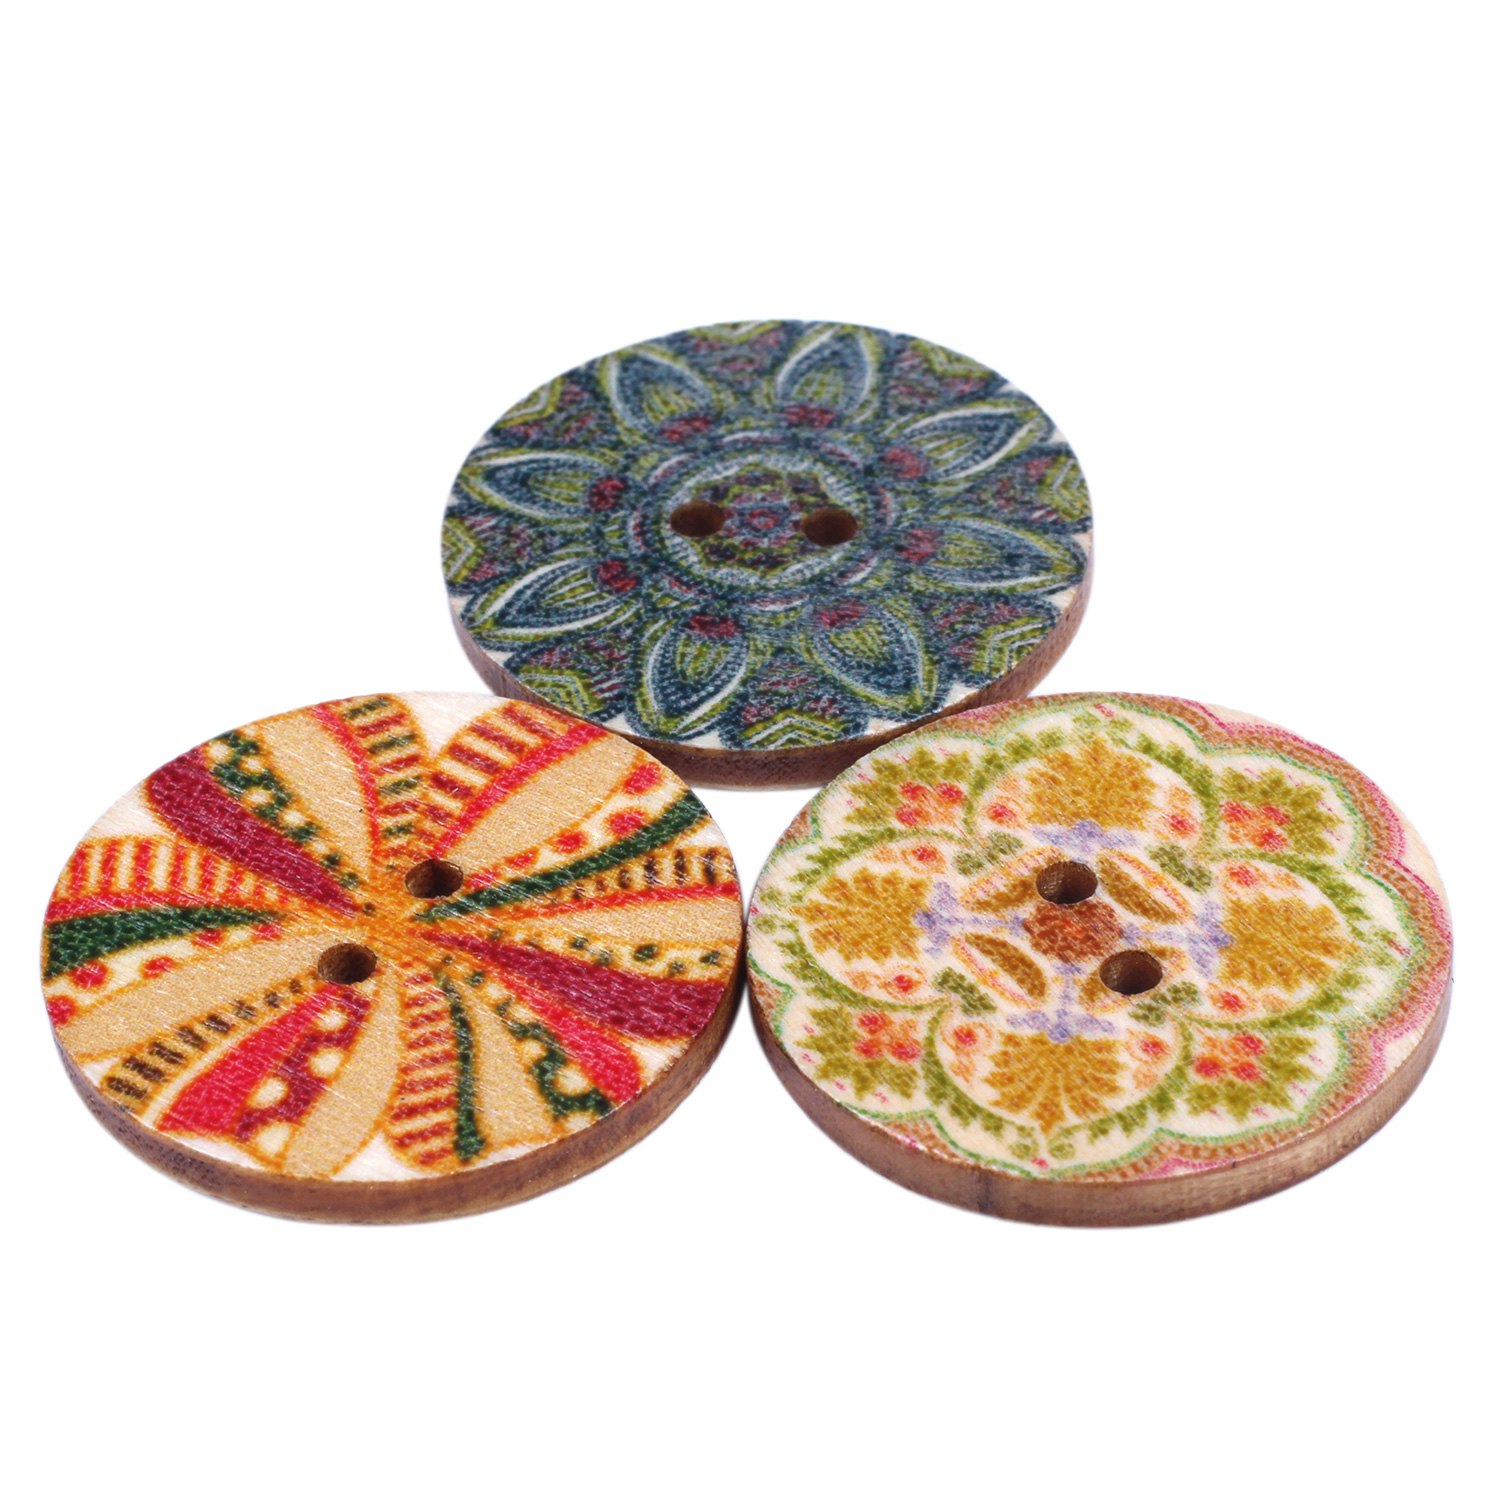 Mixed-Flower-Painting-Round-2-Holes-Wood-Wooden-Buttons-for-Sewing-Crafting-Z4I2 thumbnail 7